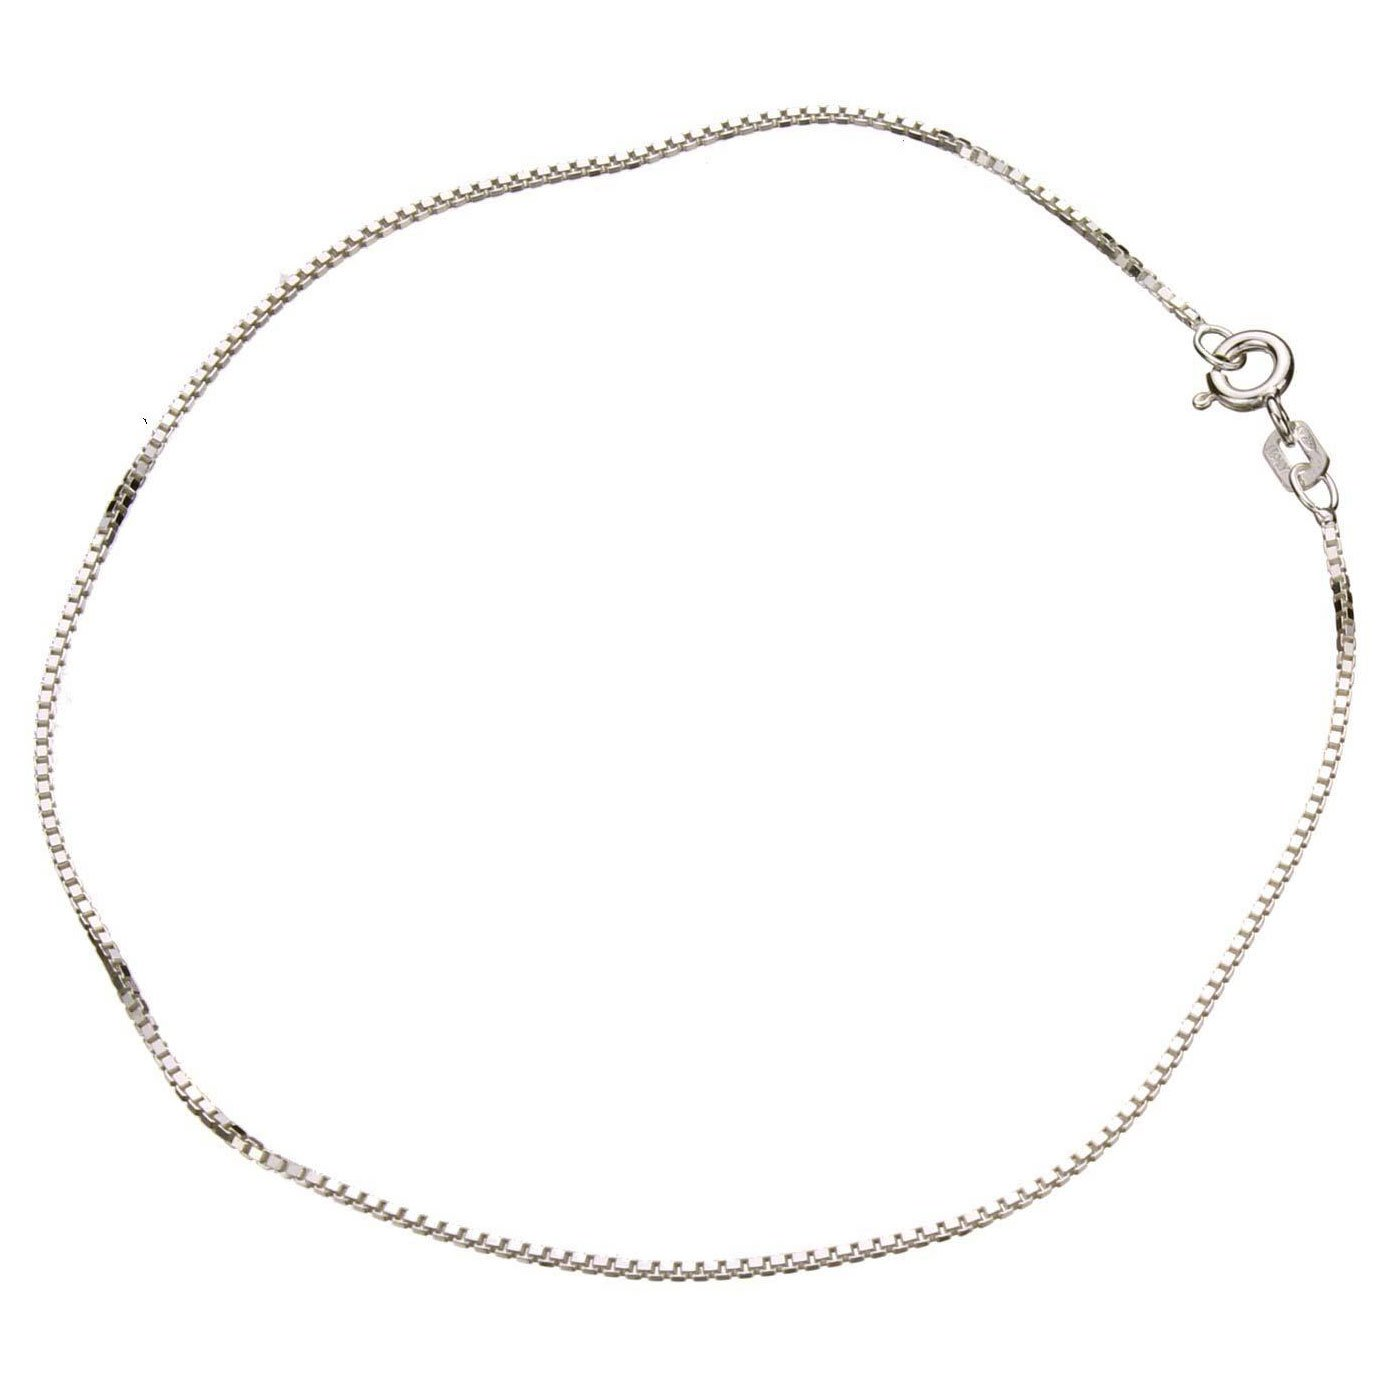 Sterling Silver 1.1mm Box Link Nickel Free Chain Anklet Italy 11 Inch